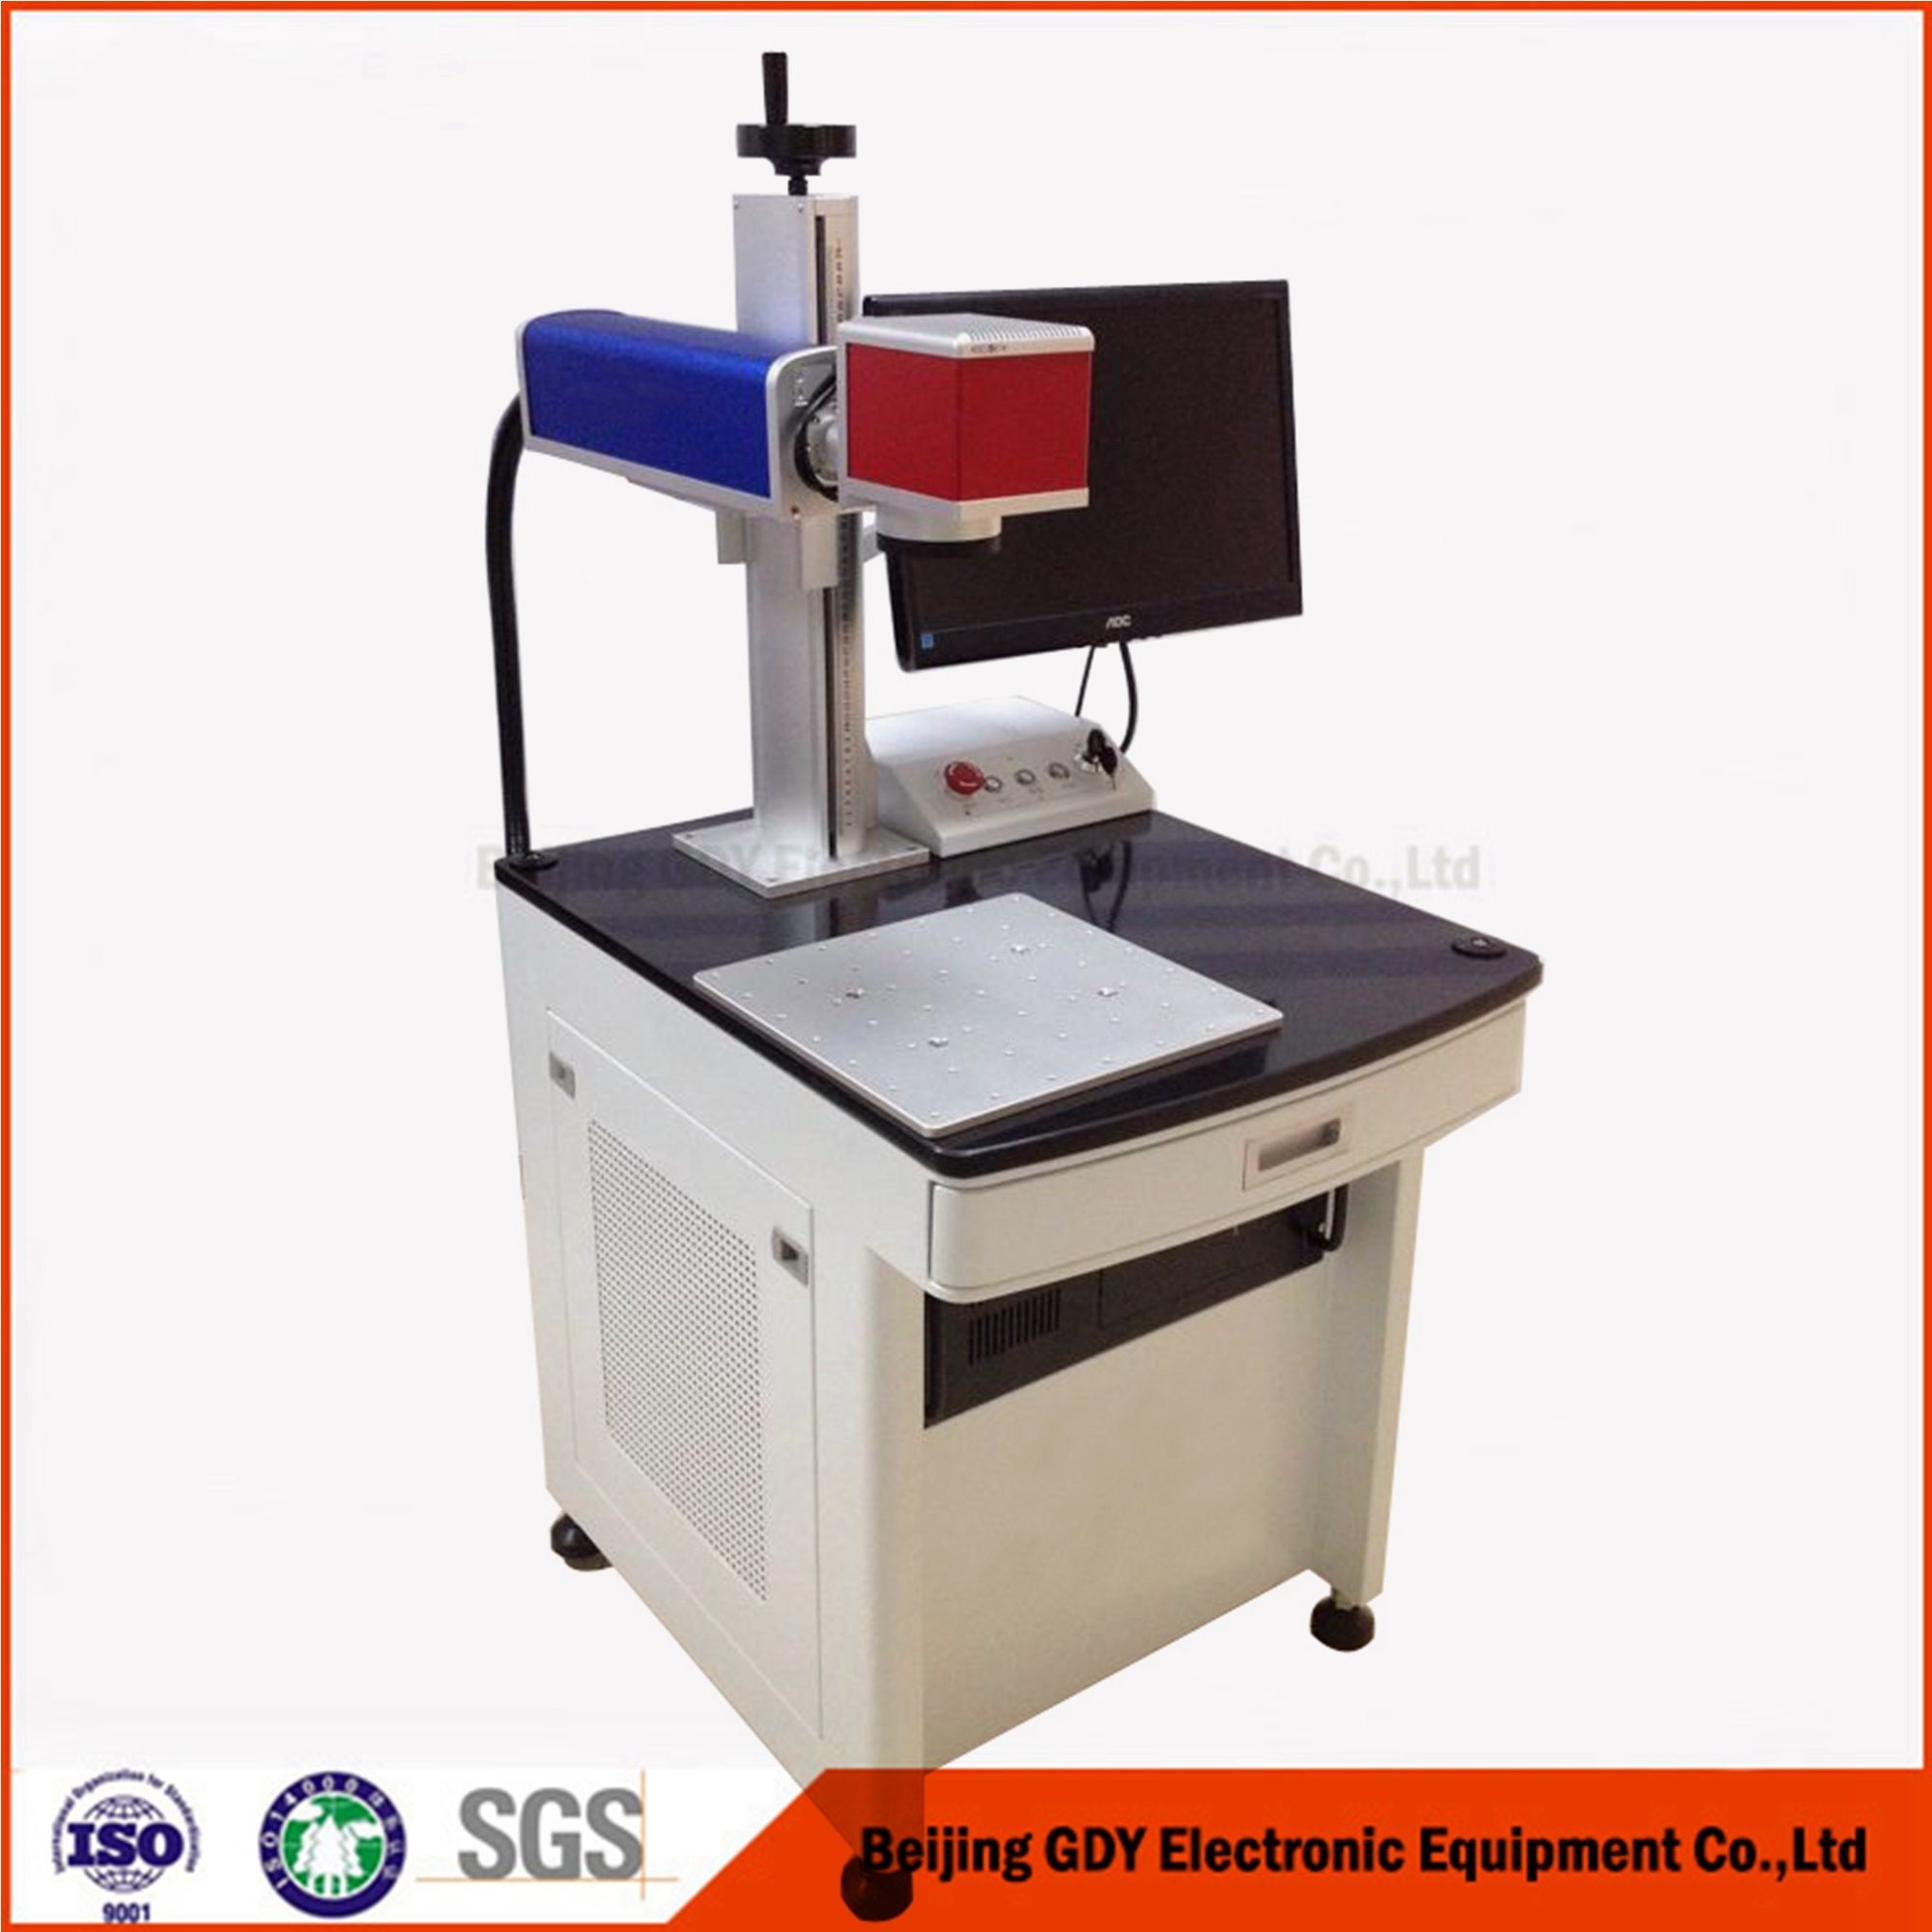 CNC Economical Table Fiber Laser Marking Machine for Stainless Steels, Metals, ABS, Plastics